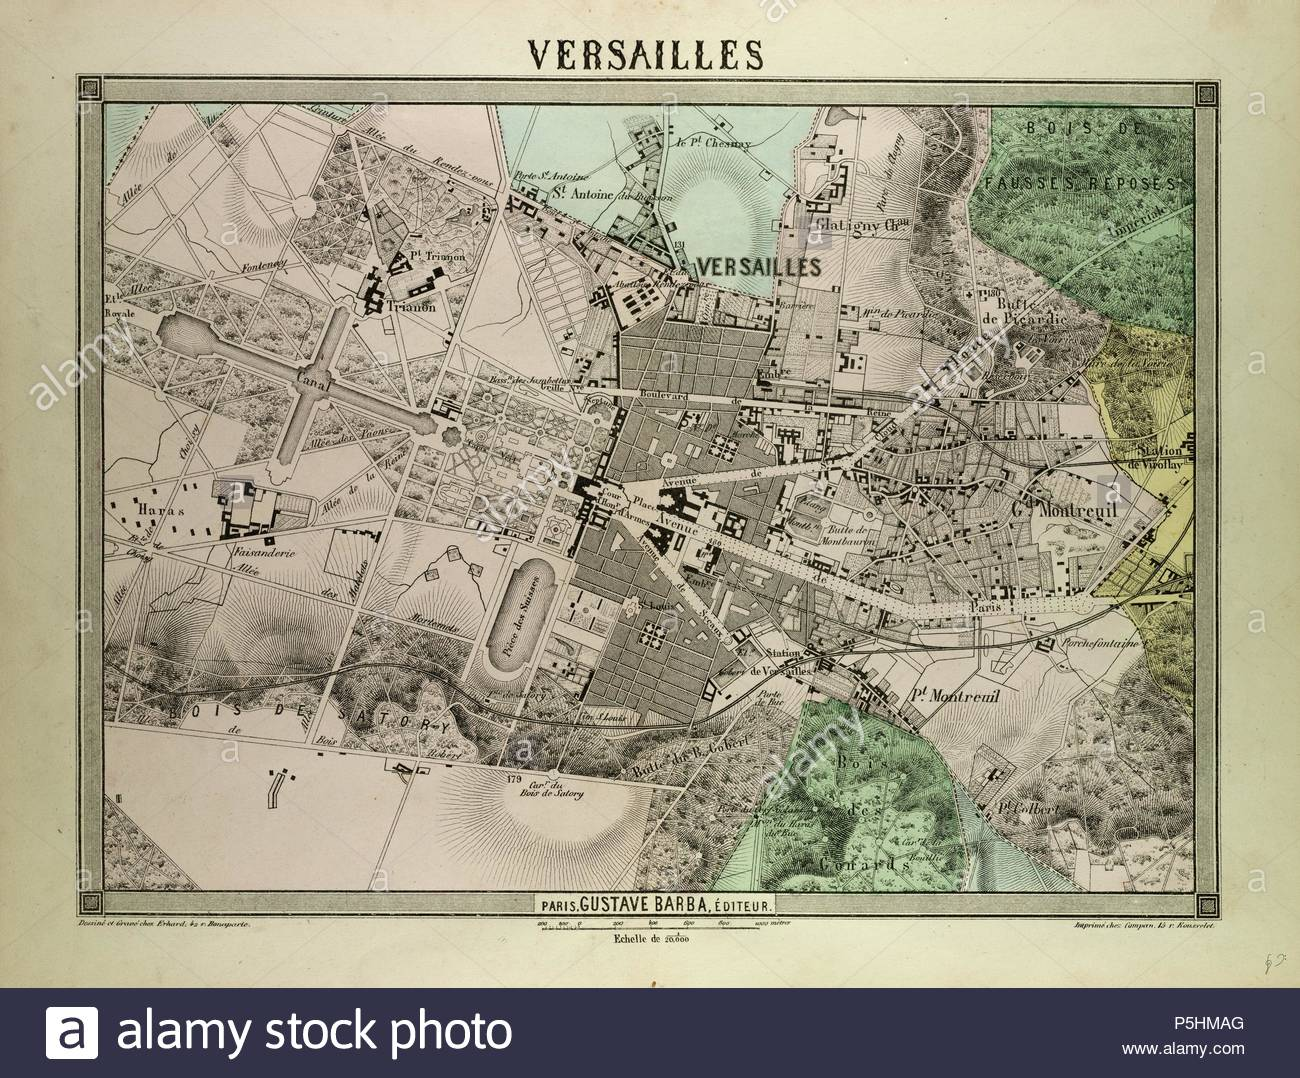 Map Of France Versailles.Map Of Versailles France Stock Photo 209986856 Alamy